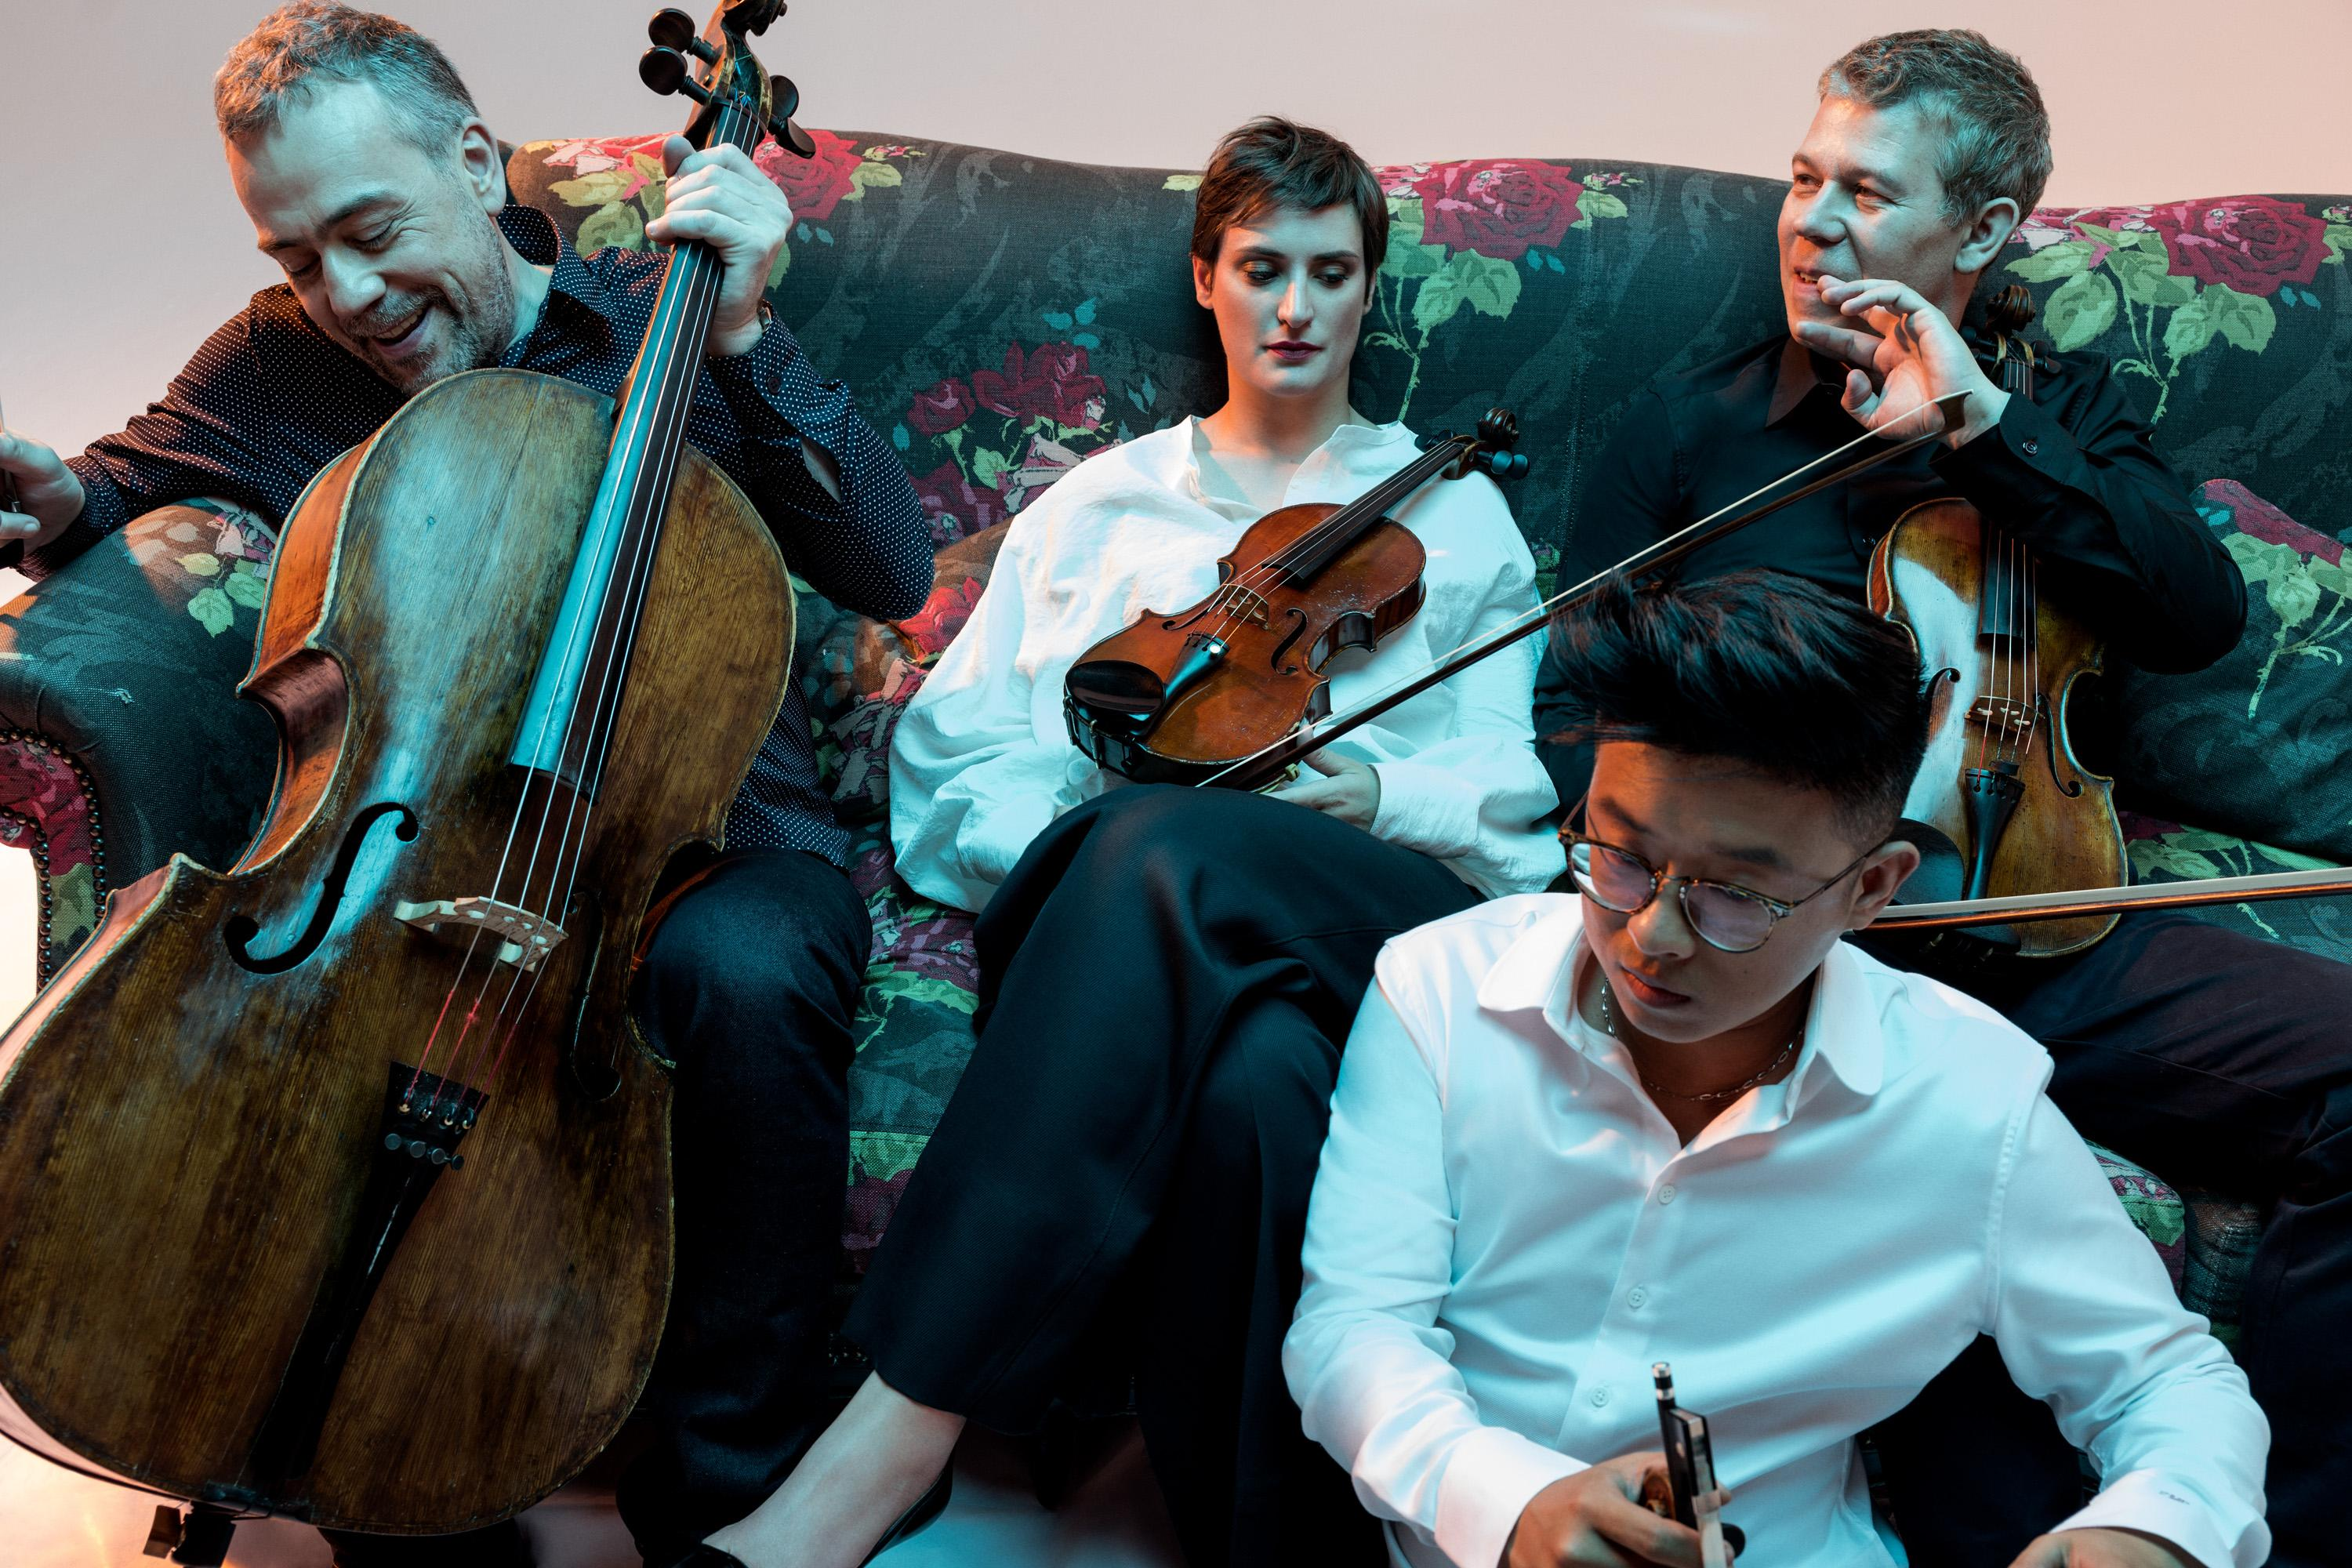 members of Quatuor Diotima posing on a couch with their instruments